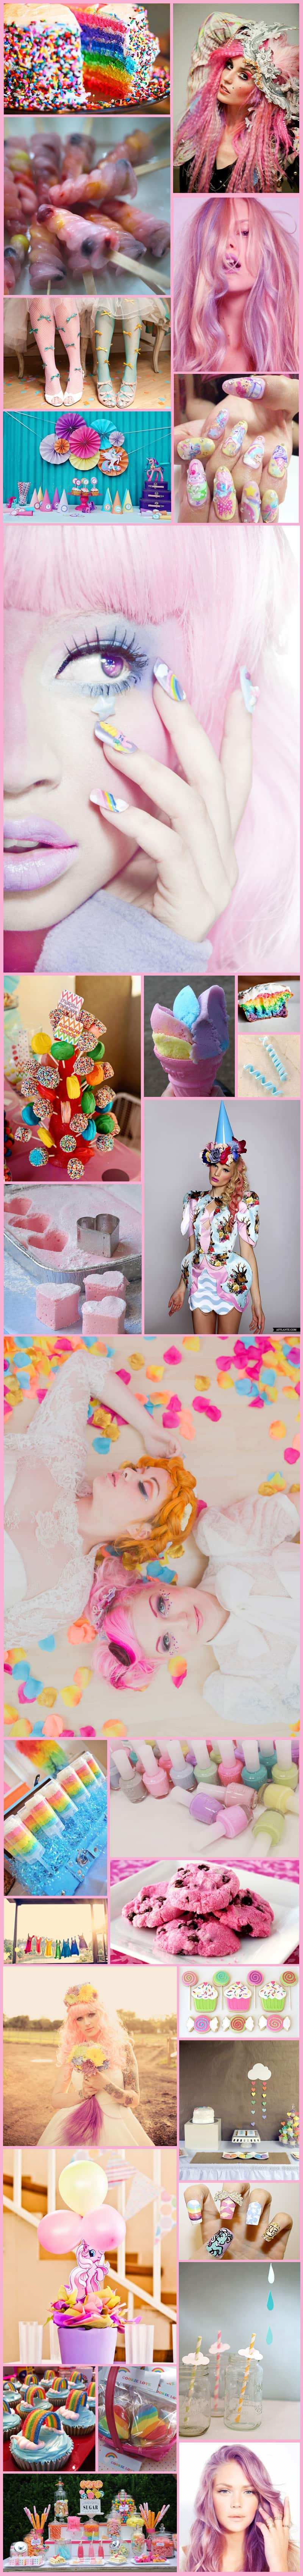 My Little Pony Inspiration Board